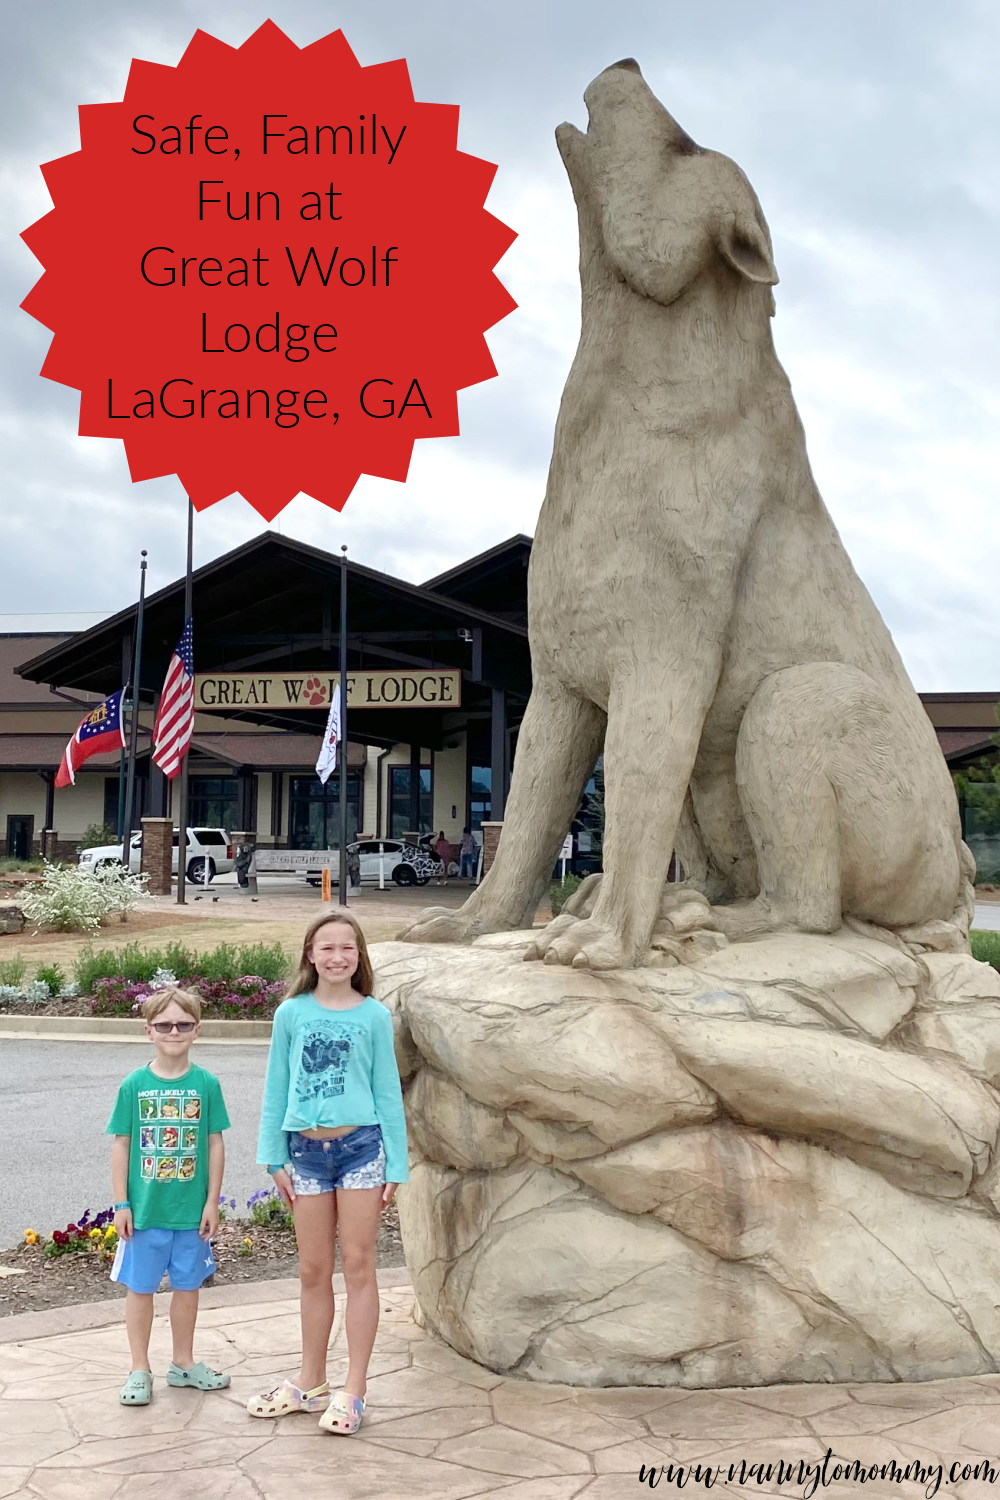 Safe, Family Fun at Great Wolf Lodge LaGrange